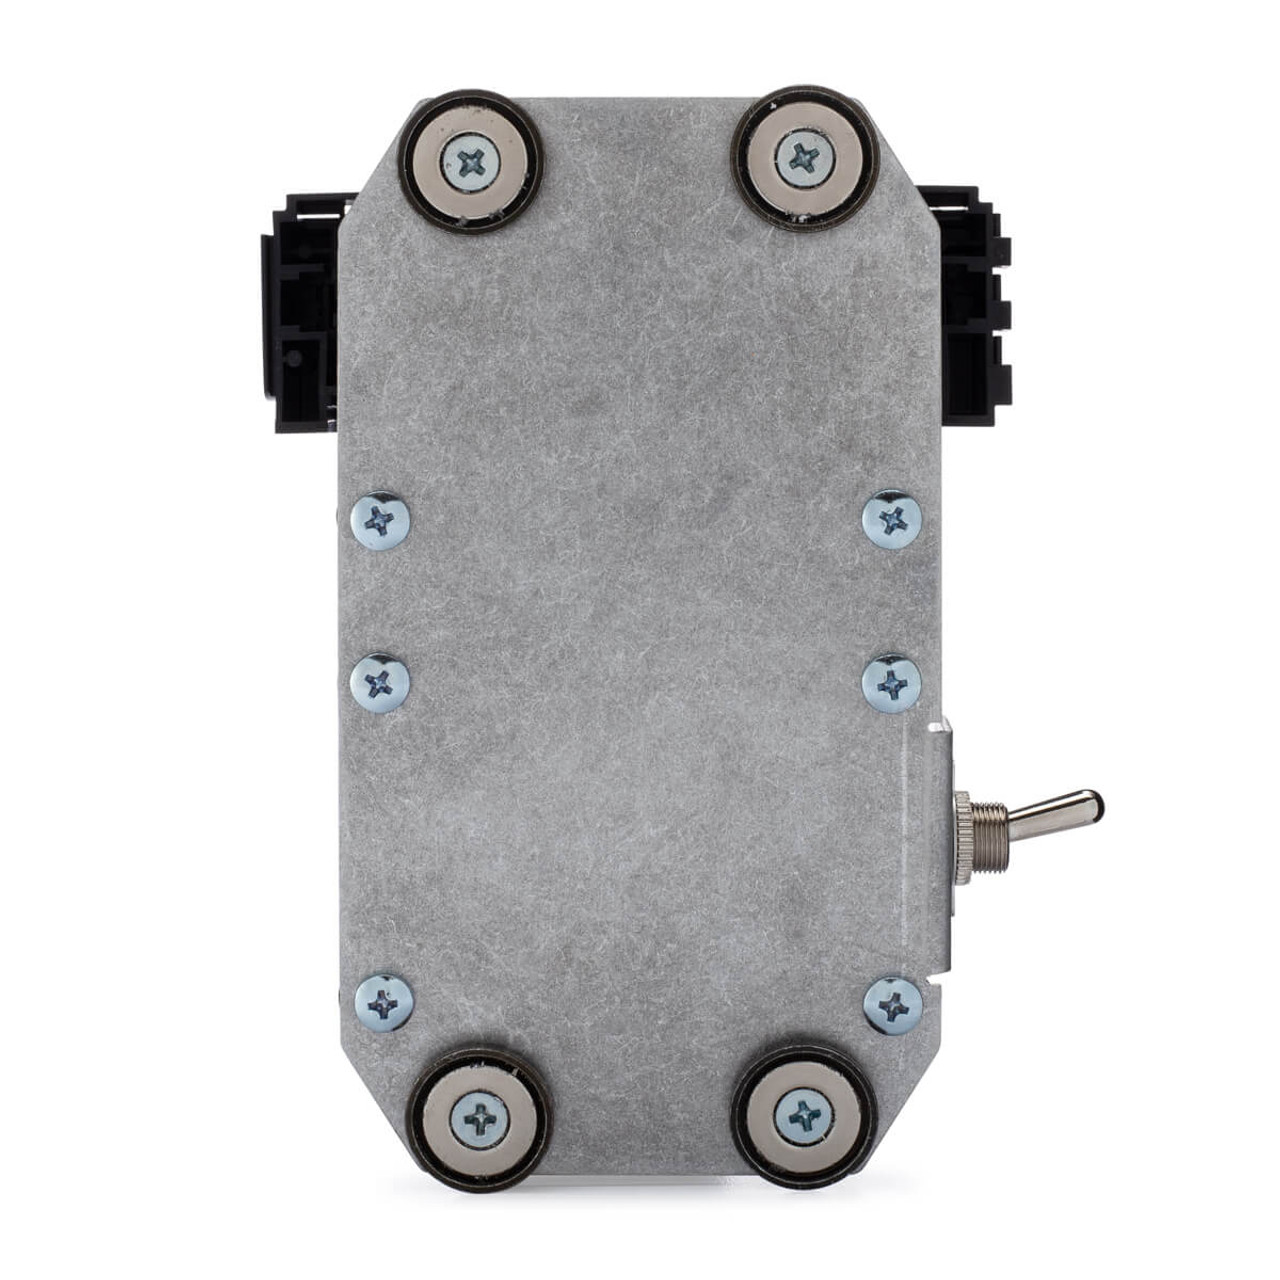 medium resolution of fuse panel firewall magnetic mount kwikwire com electrify your ride wire harness magnets